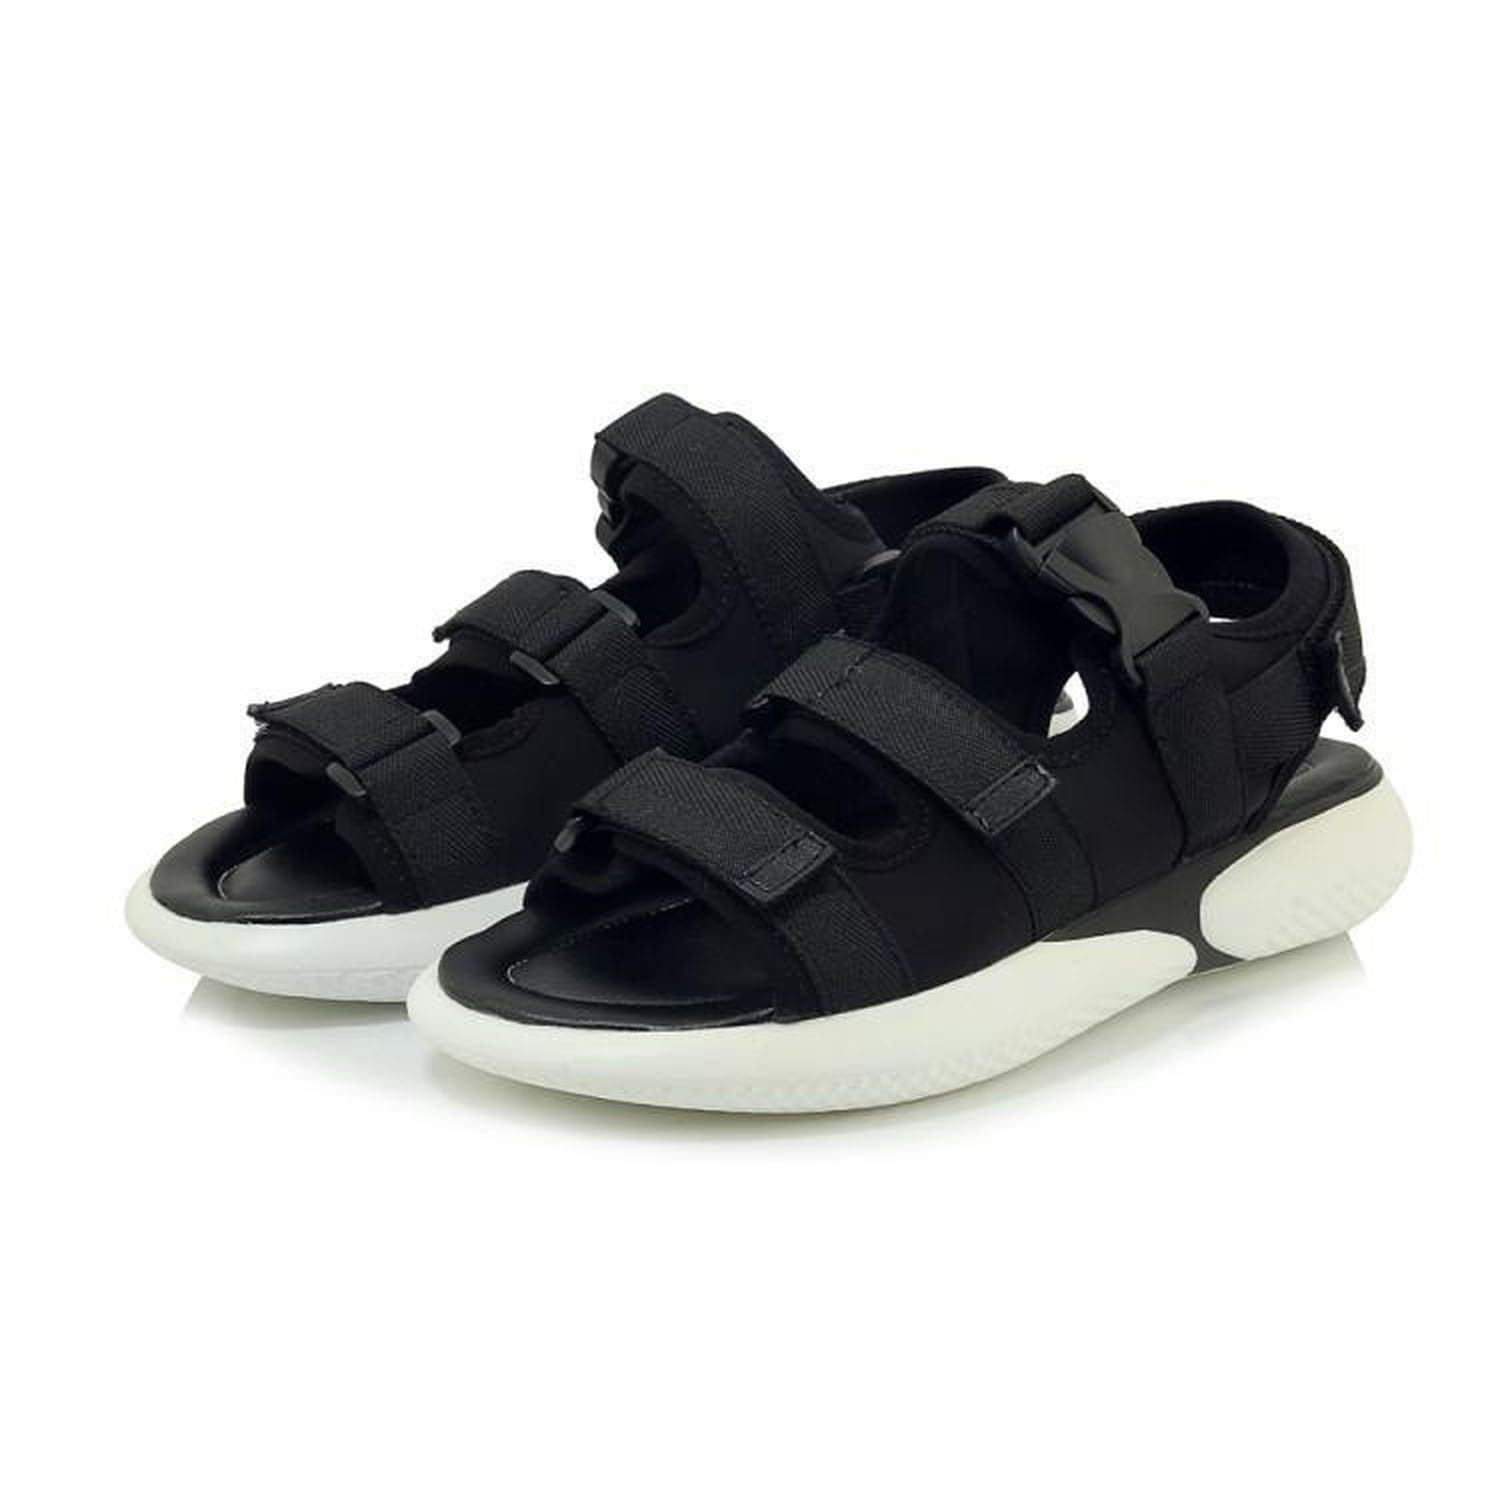 fly-consciousness Summer Sandals Sports Sandals Cloth Flat with Open Toe